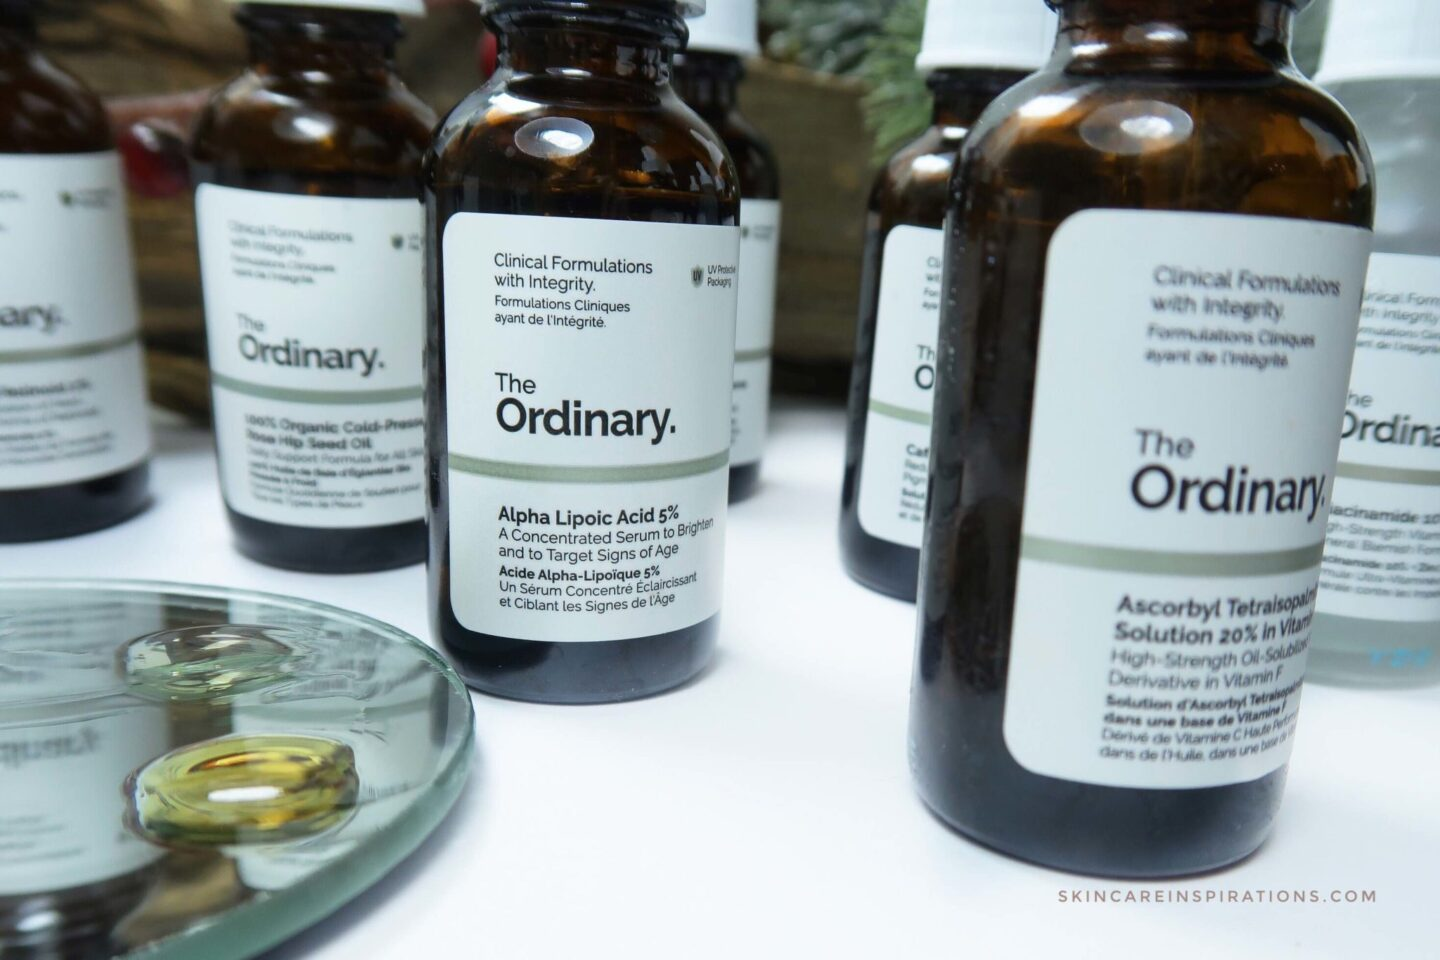 The Ordinary The Ordinary Produkte Empfehlungen